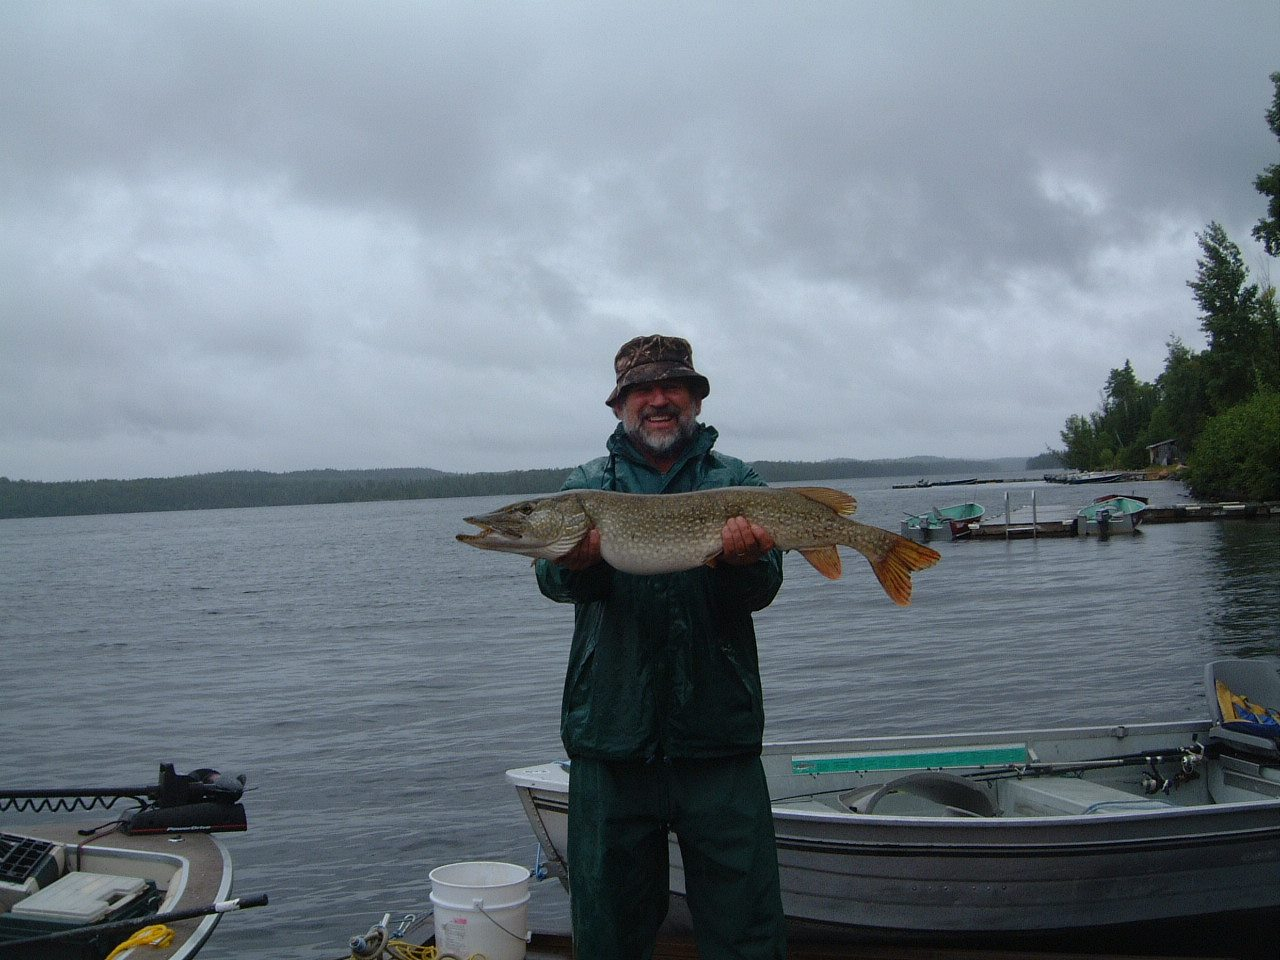 Lookout point camp northeast ontario my canada fishing for Point lookout fishing